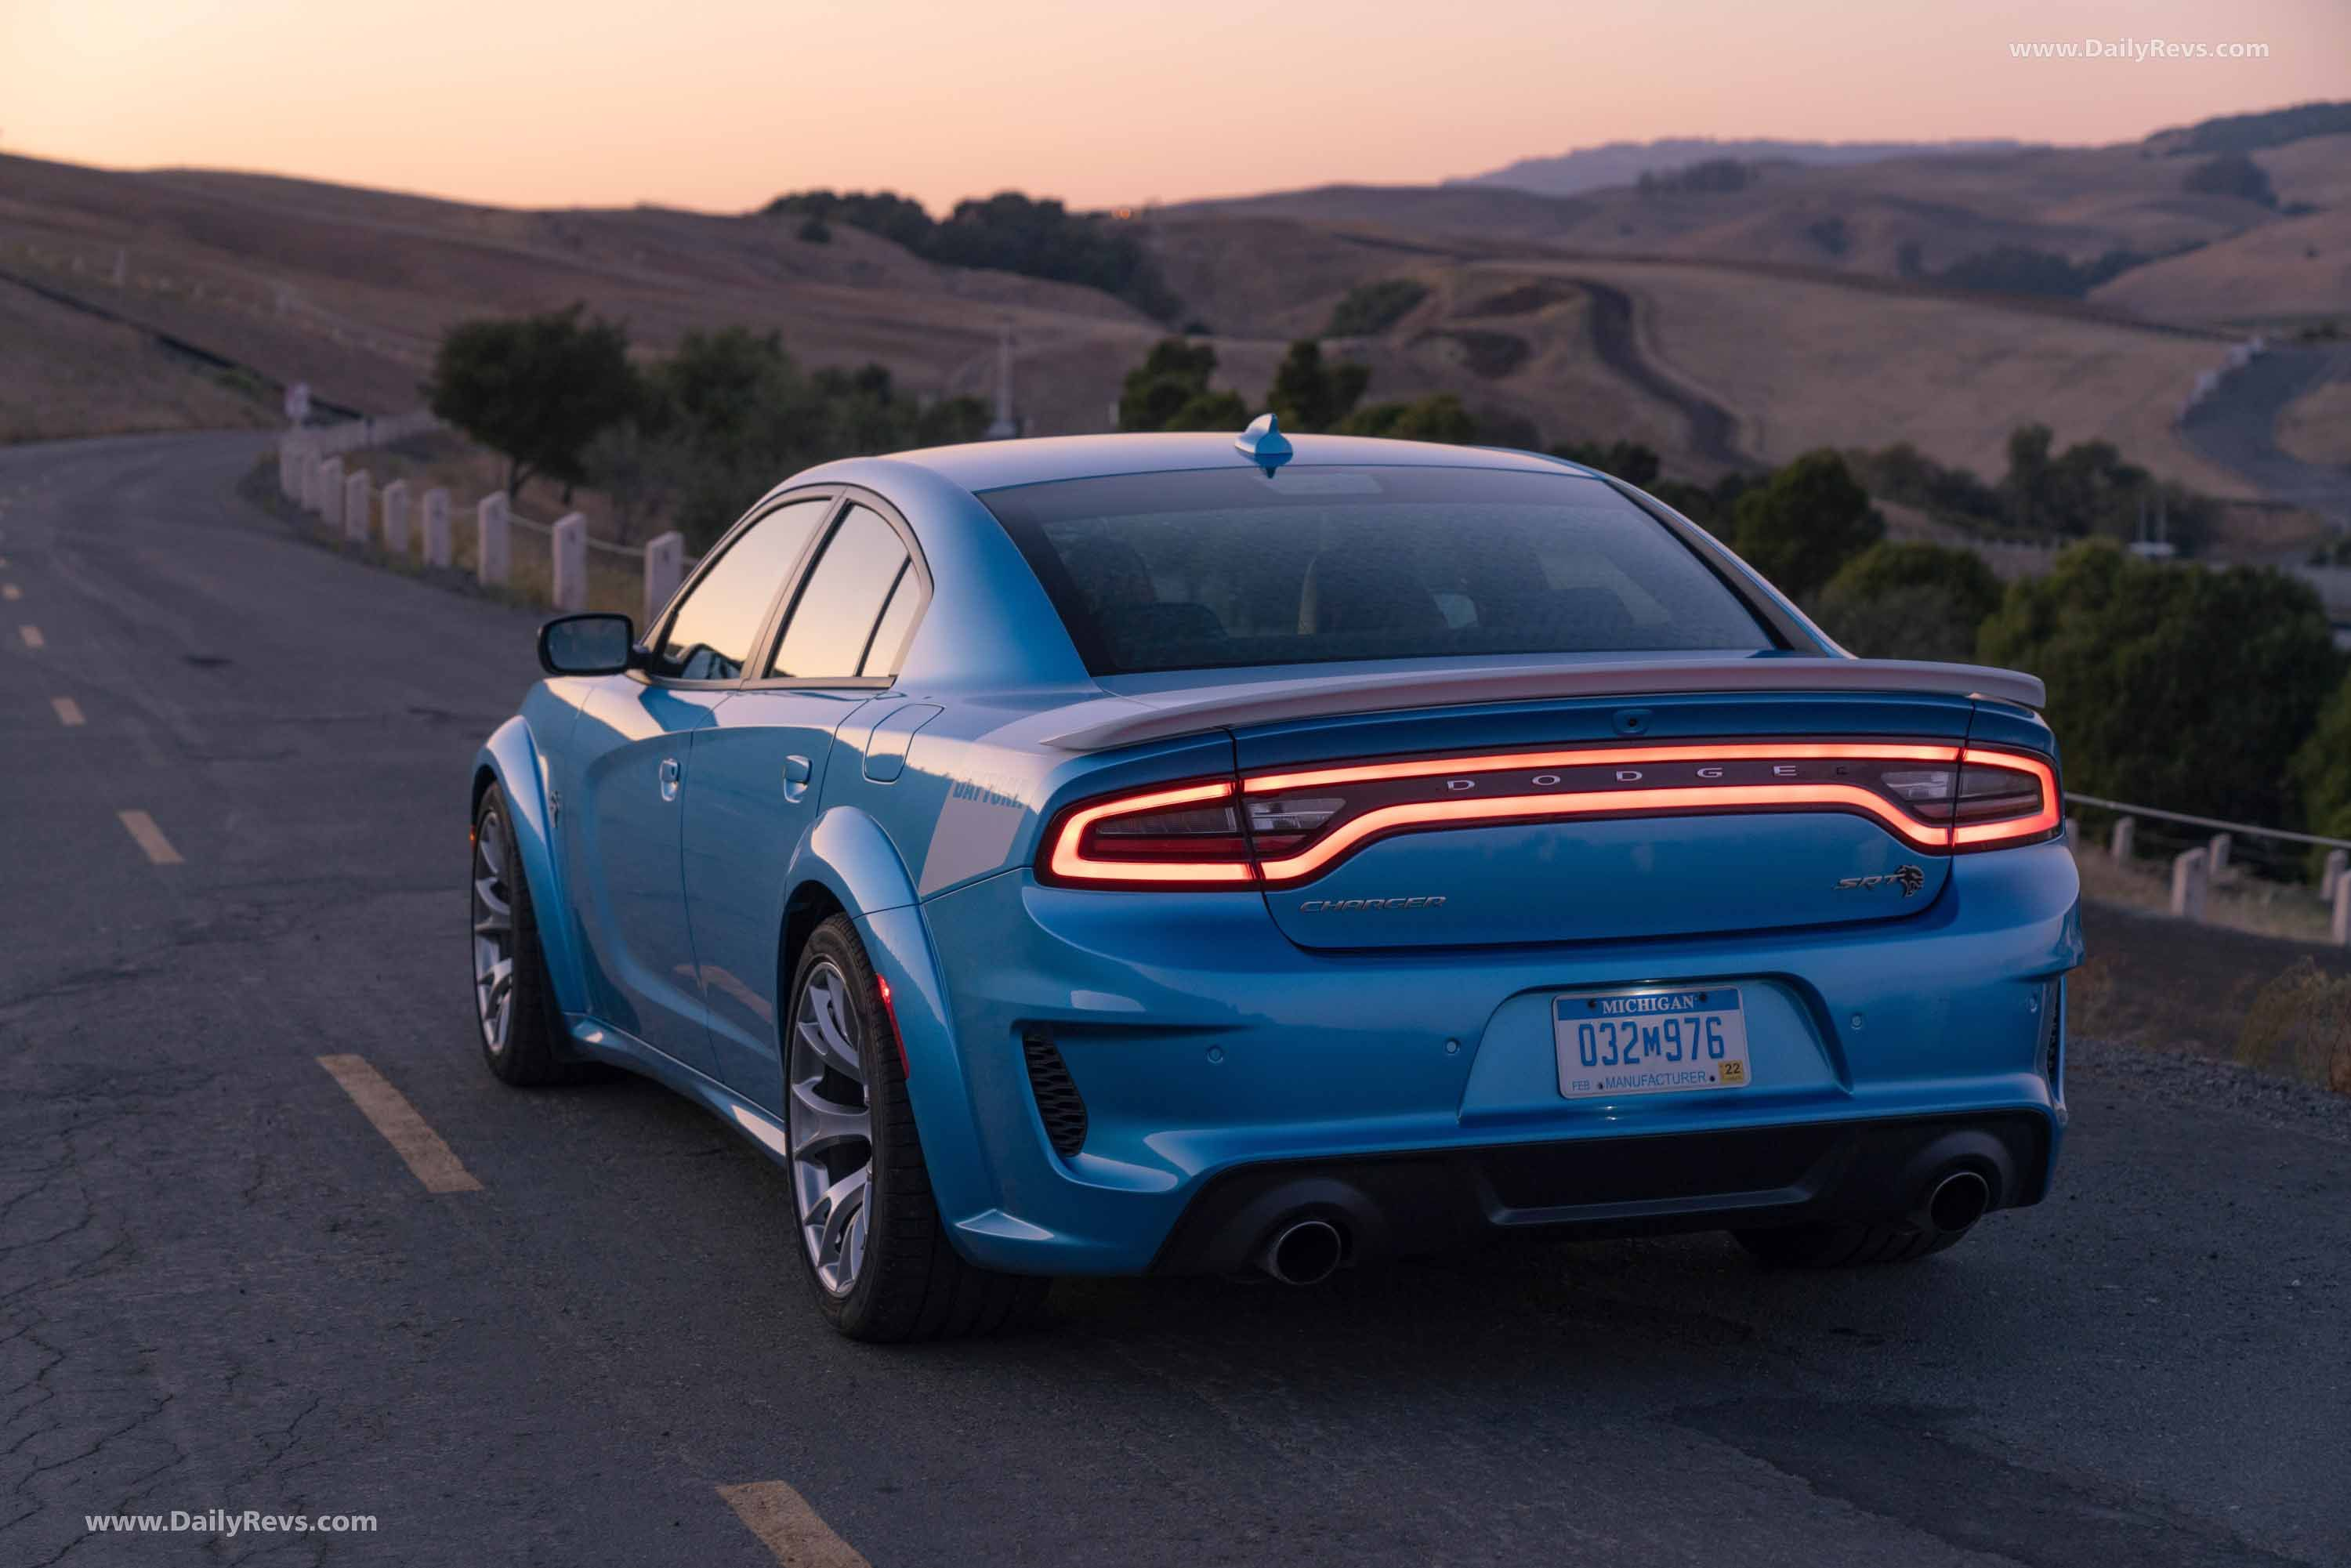 2020 Dodge Charger Srt Hellcat Widebody Hd Pictures Specs Information Videos Dailyrevs In 2020 Dodge Charger Charger Srt Hellcat Dodge Charger Srt